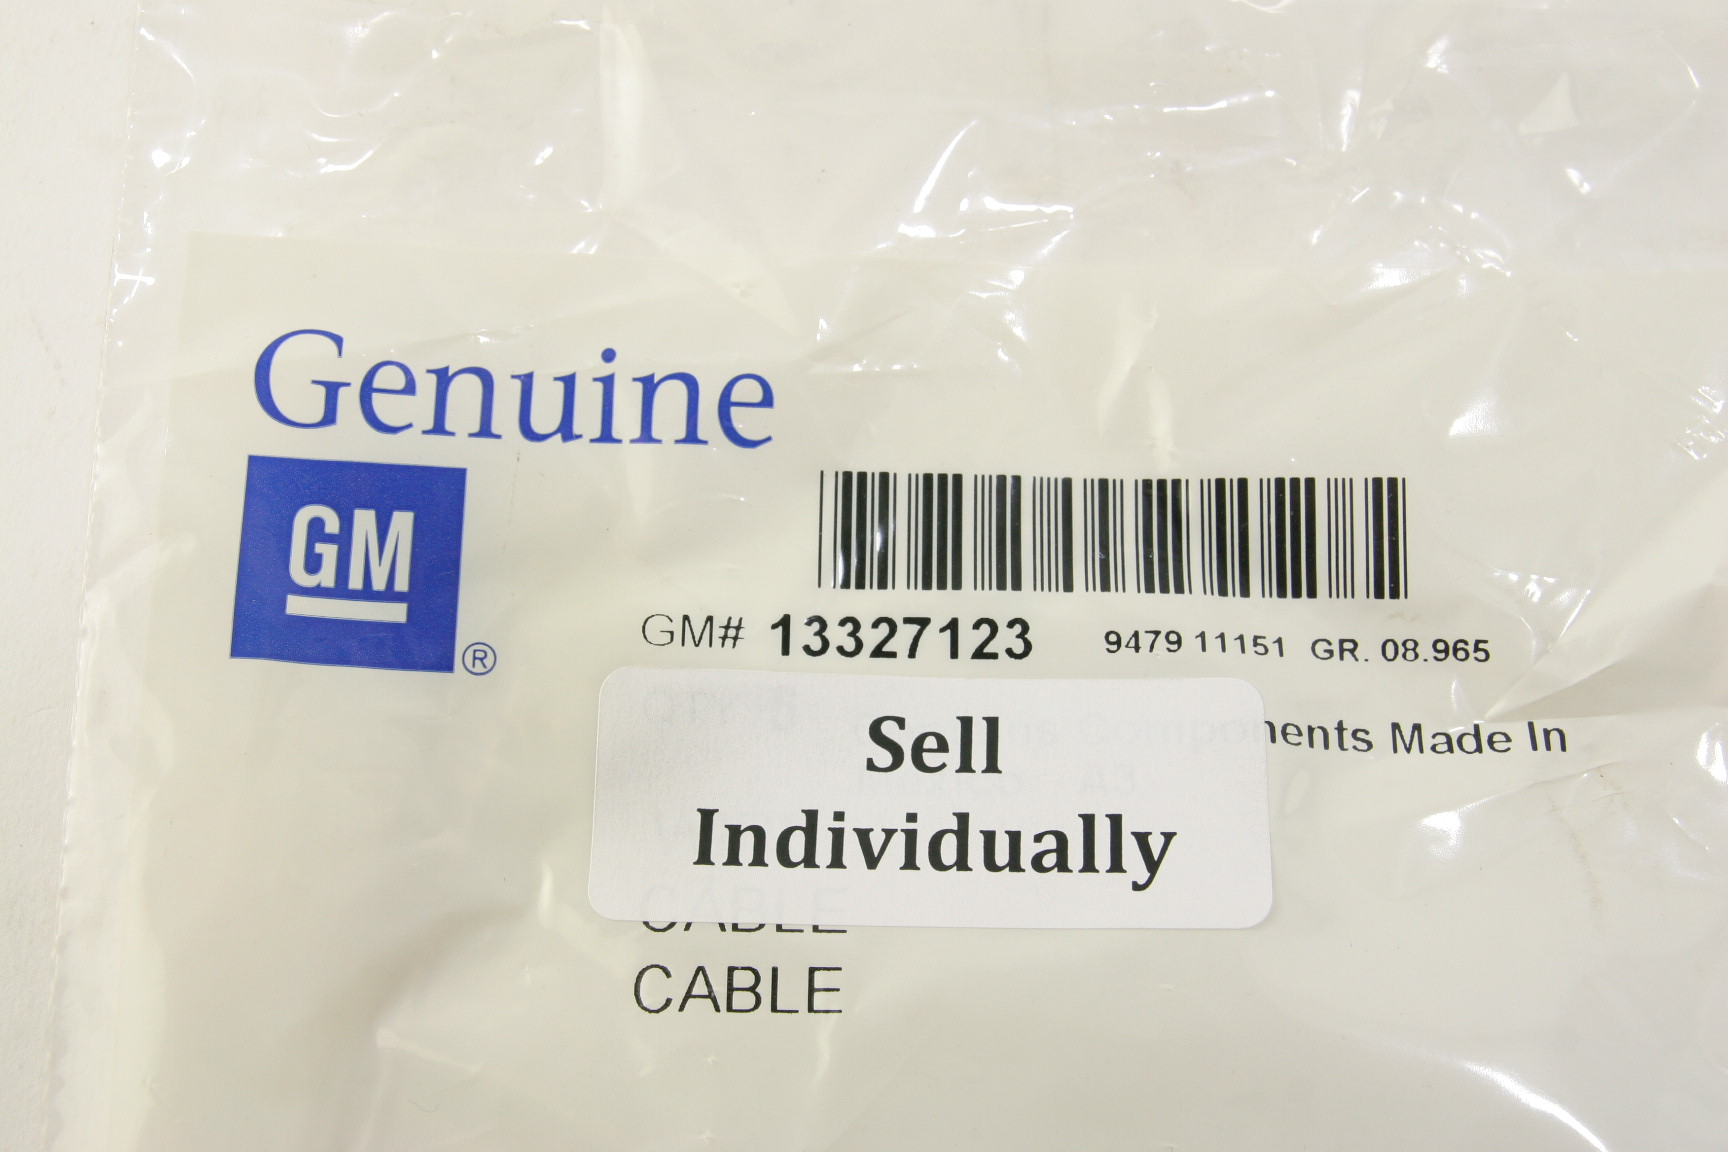 New Oem 13327123 Gm Wire Kit Wiring Harness Repair Cable Fast Free Shipping